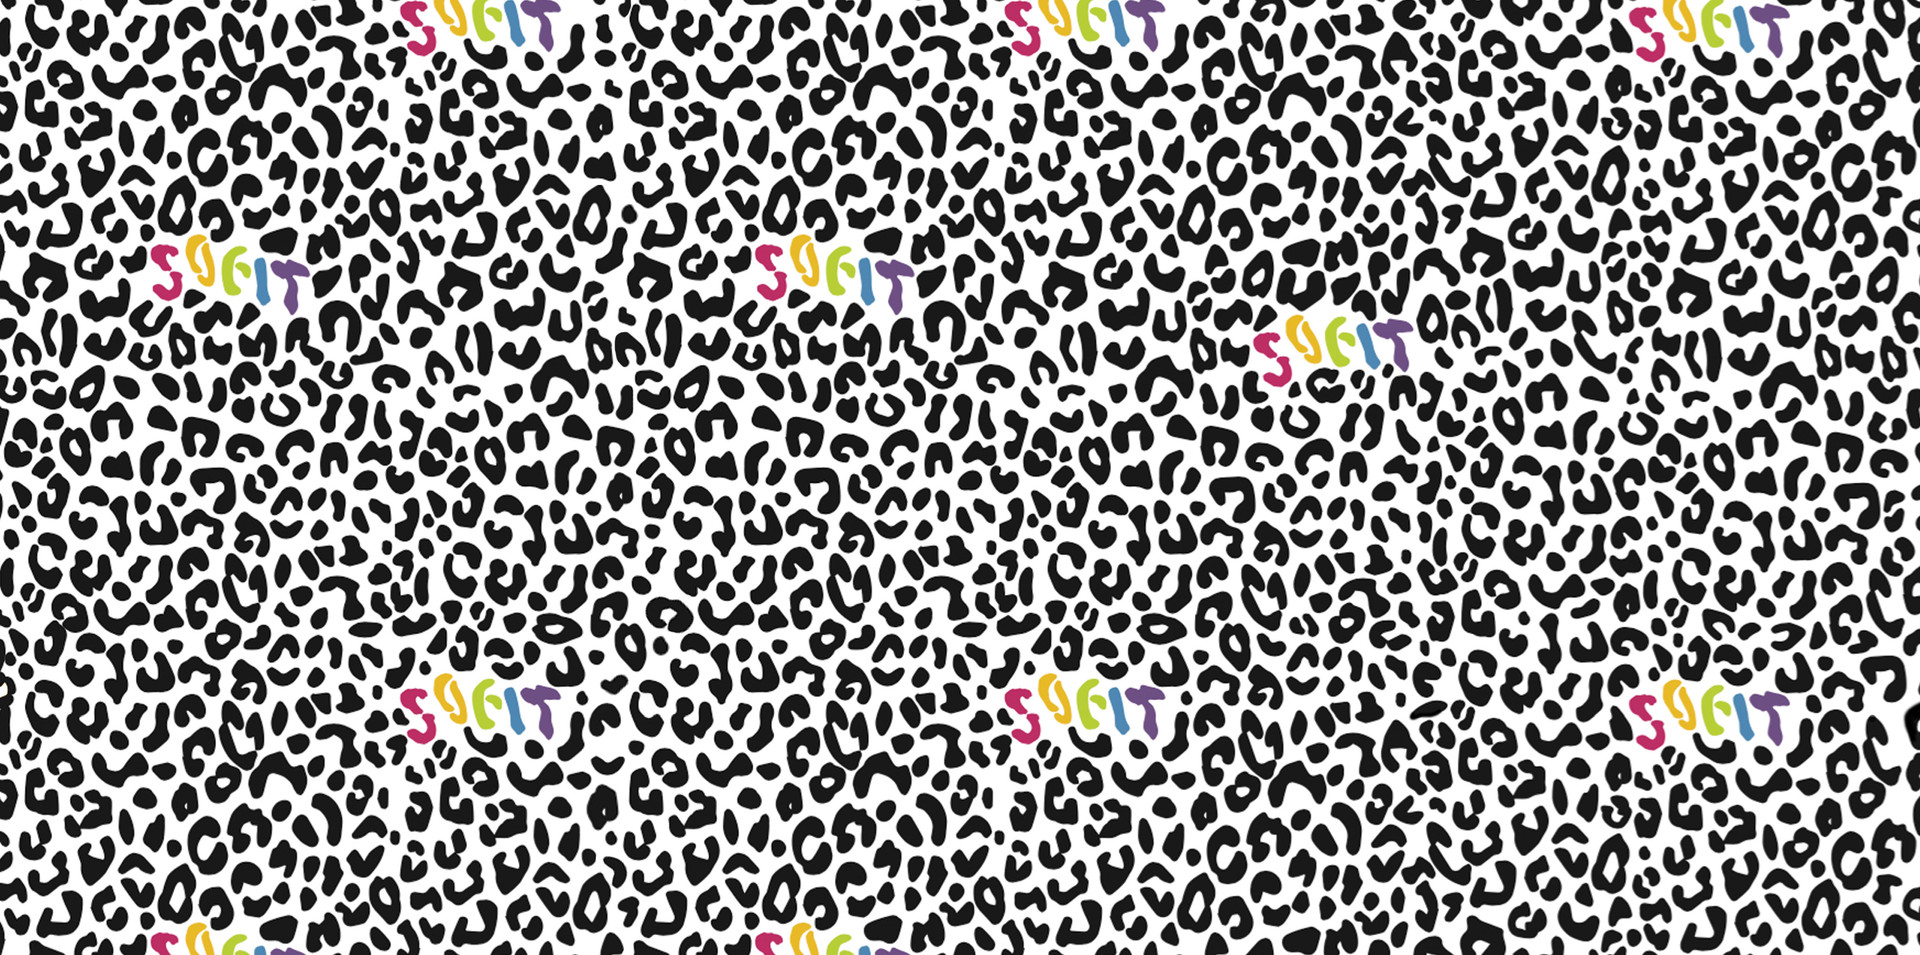 Pattern Design SOFIT Colour Logo with Black Leopard Print